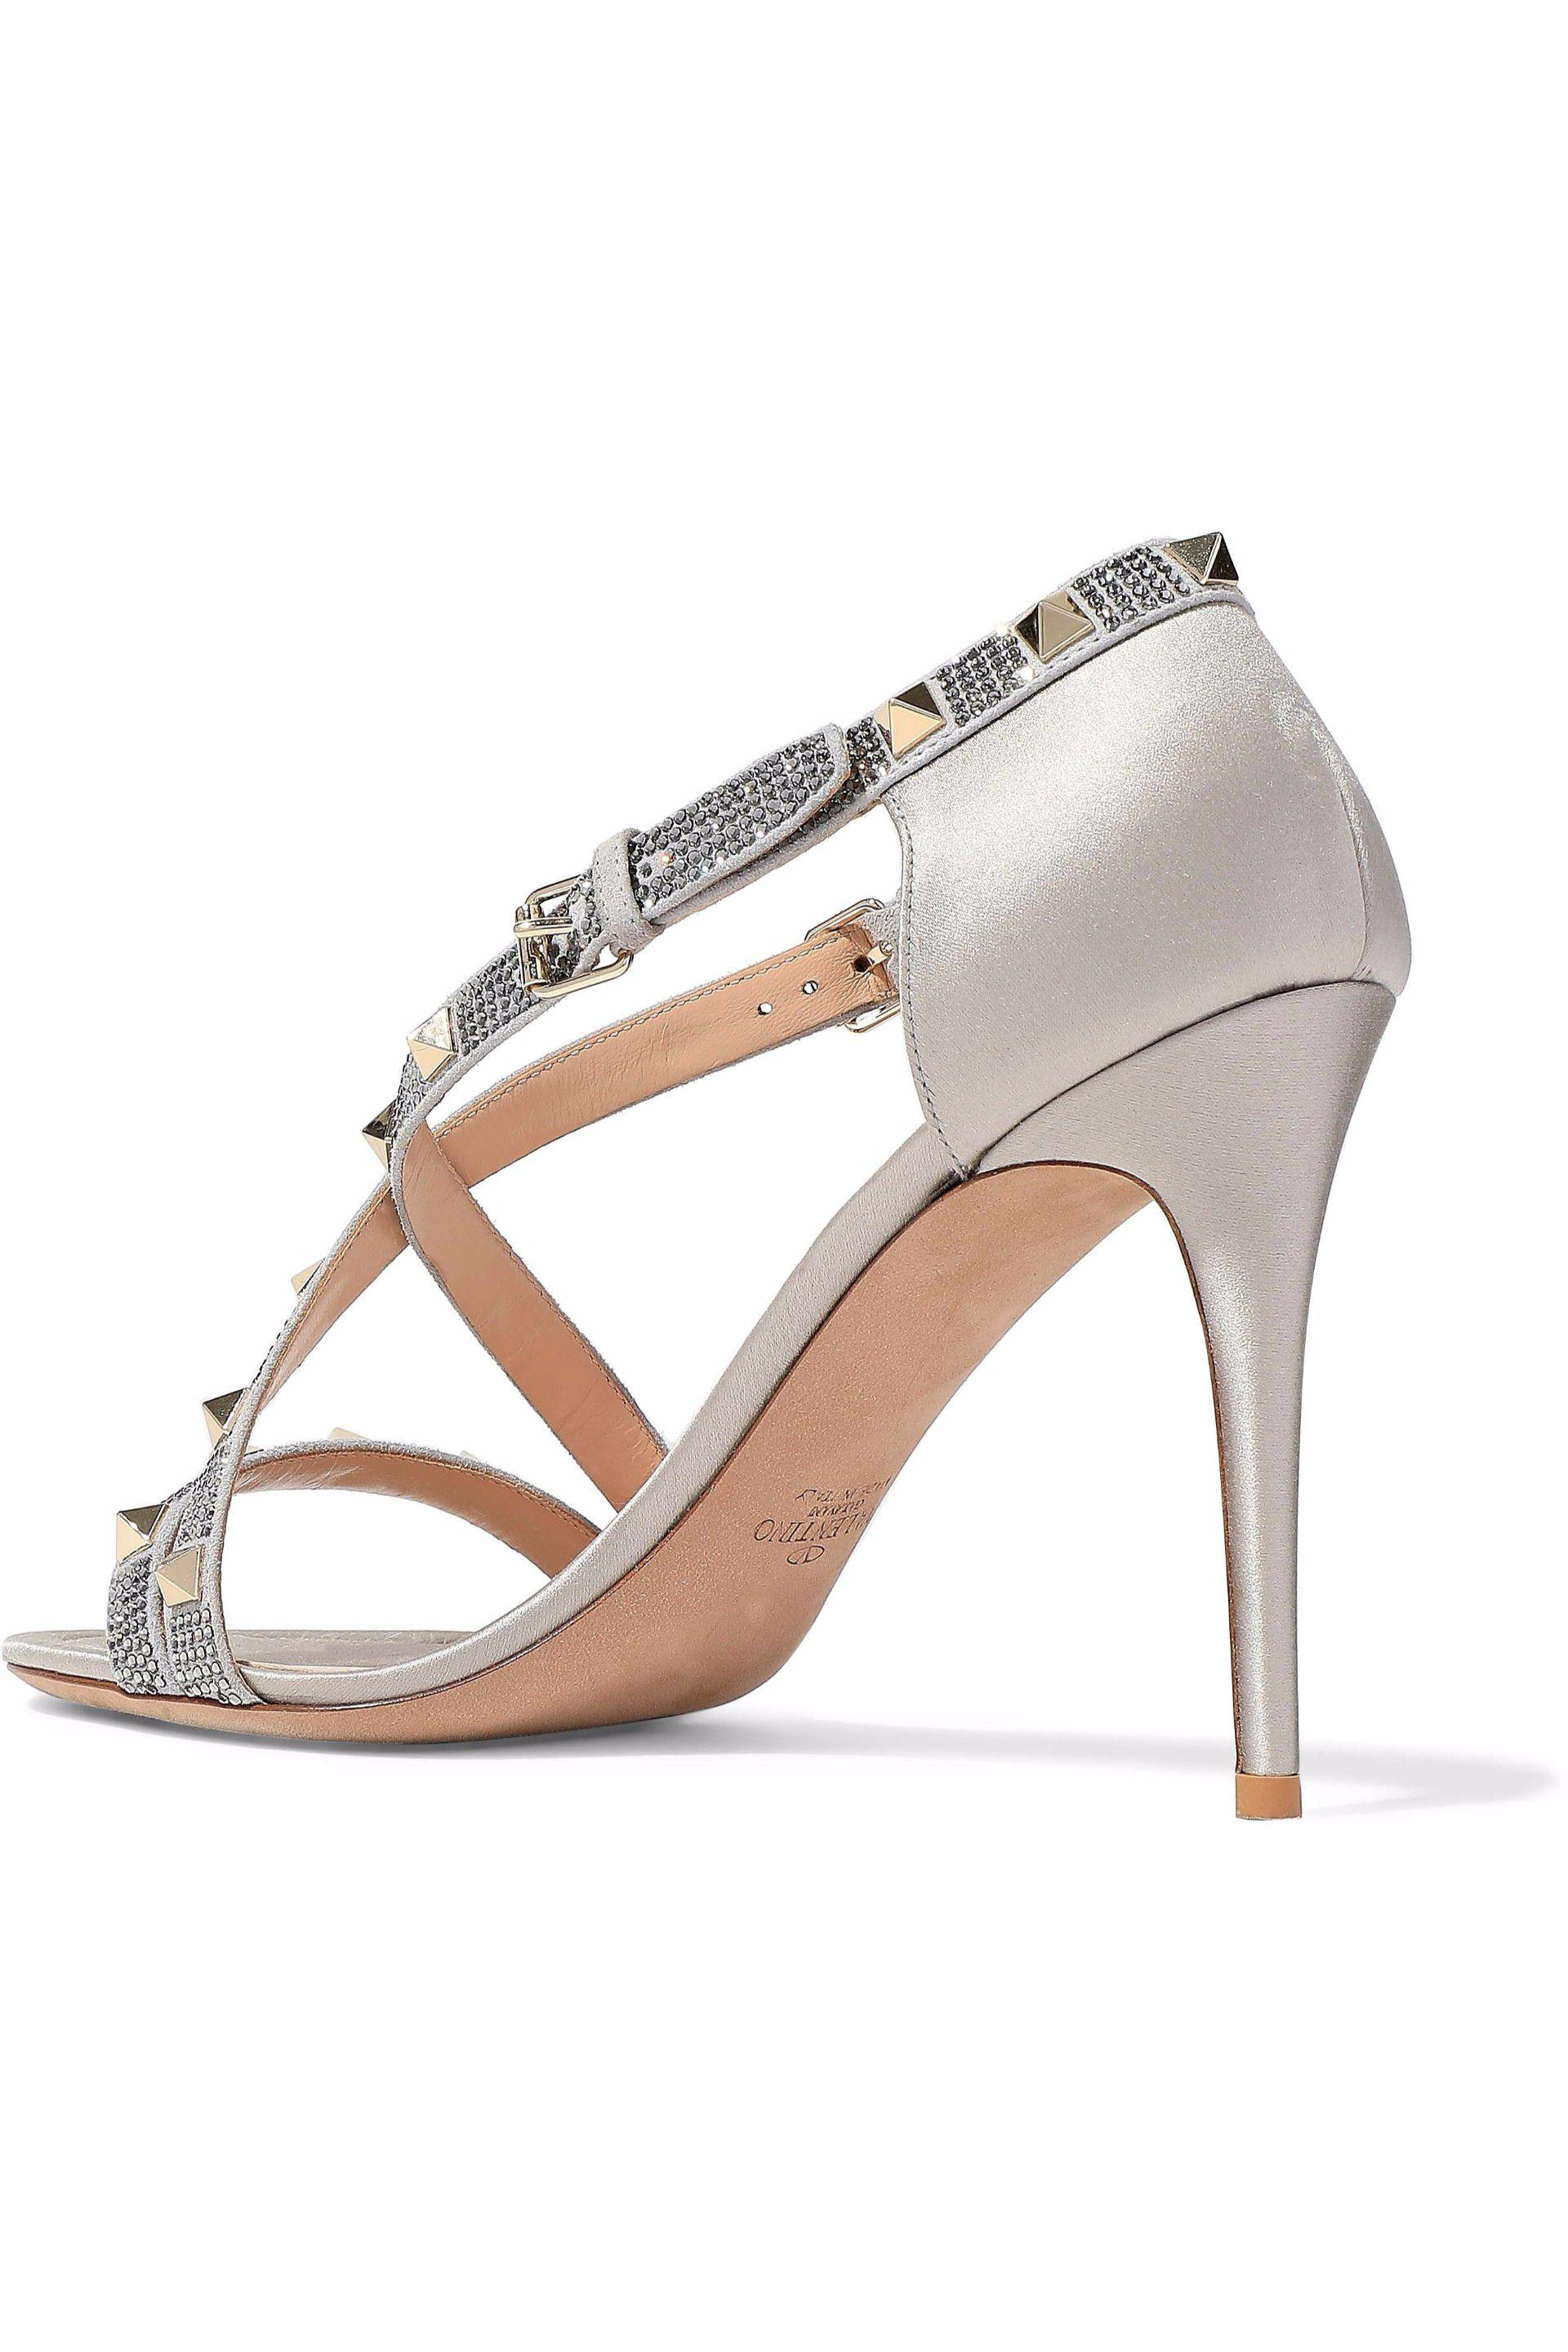 Satin sandals with crystals Valentino 7UD9AJK5n